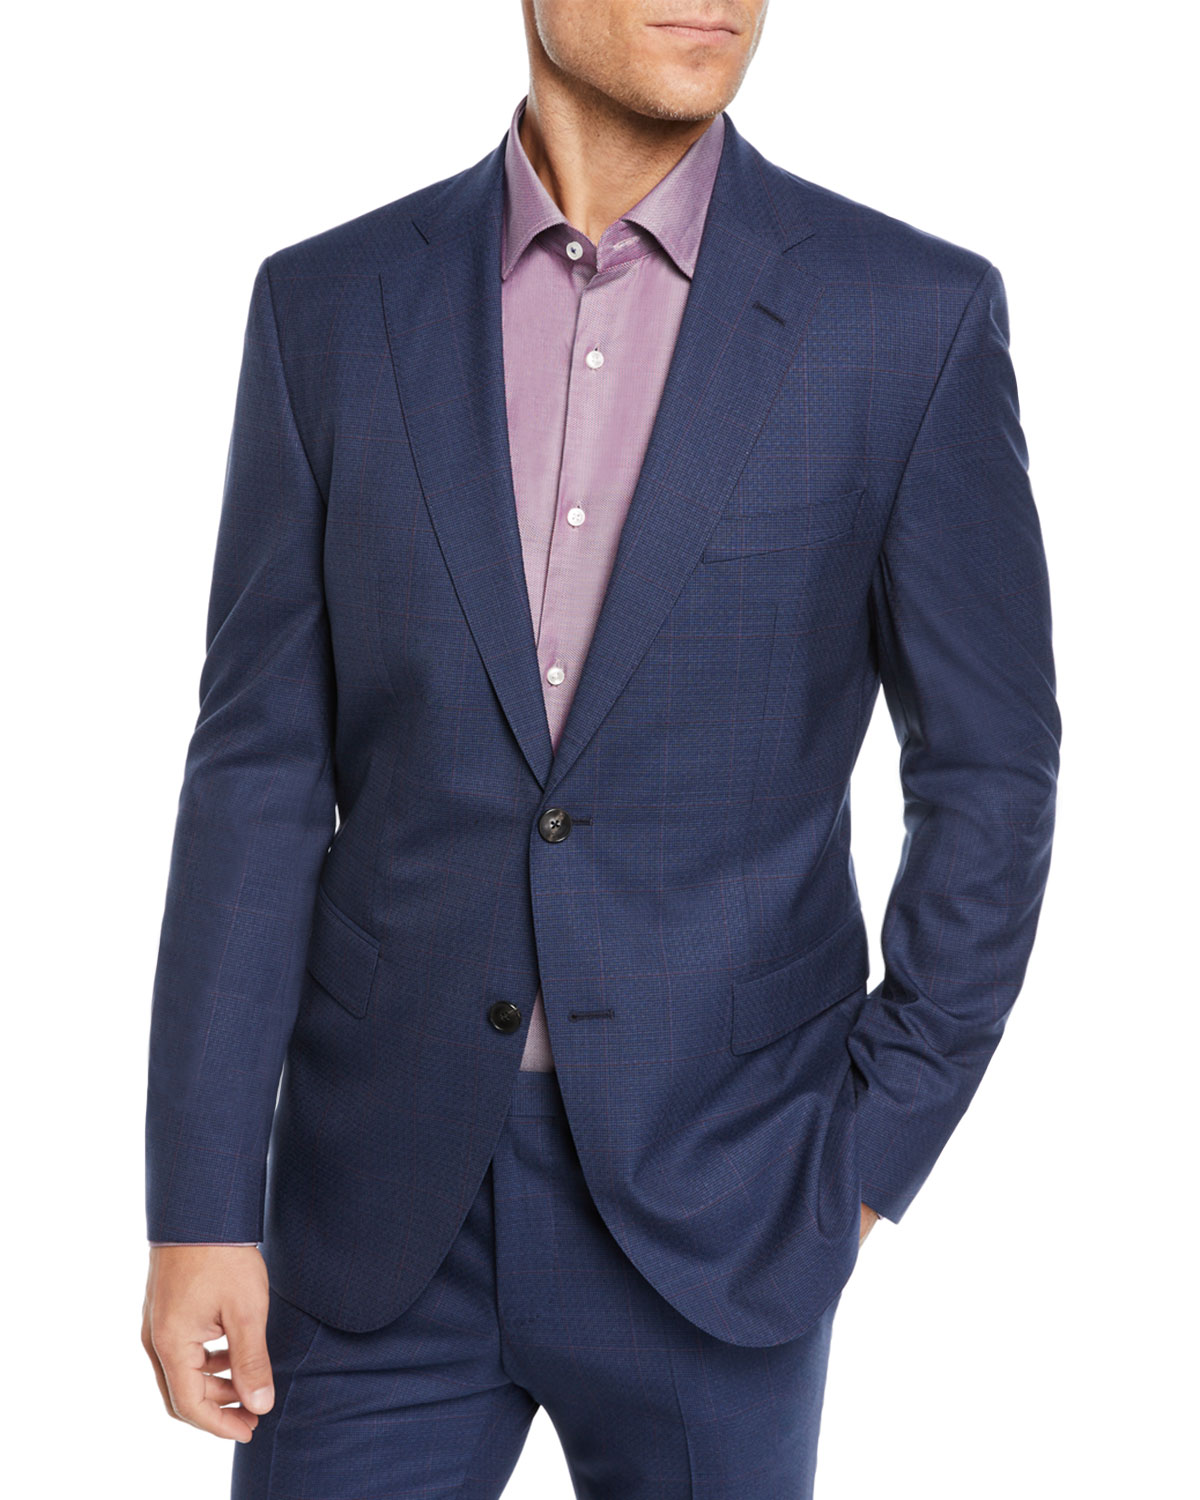 Two-Piece Berry Window Suit